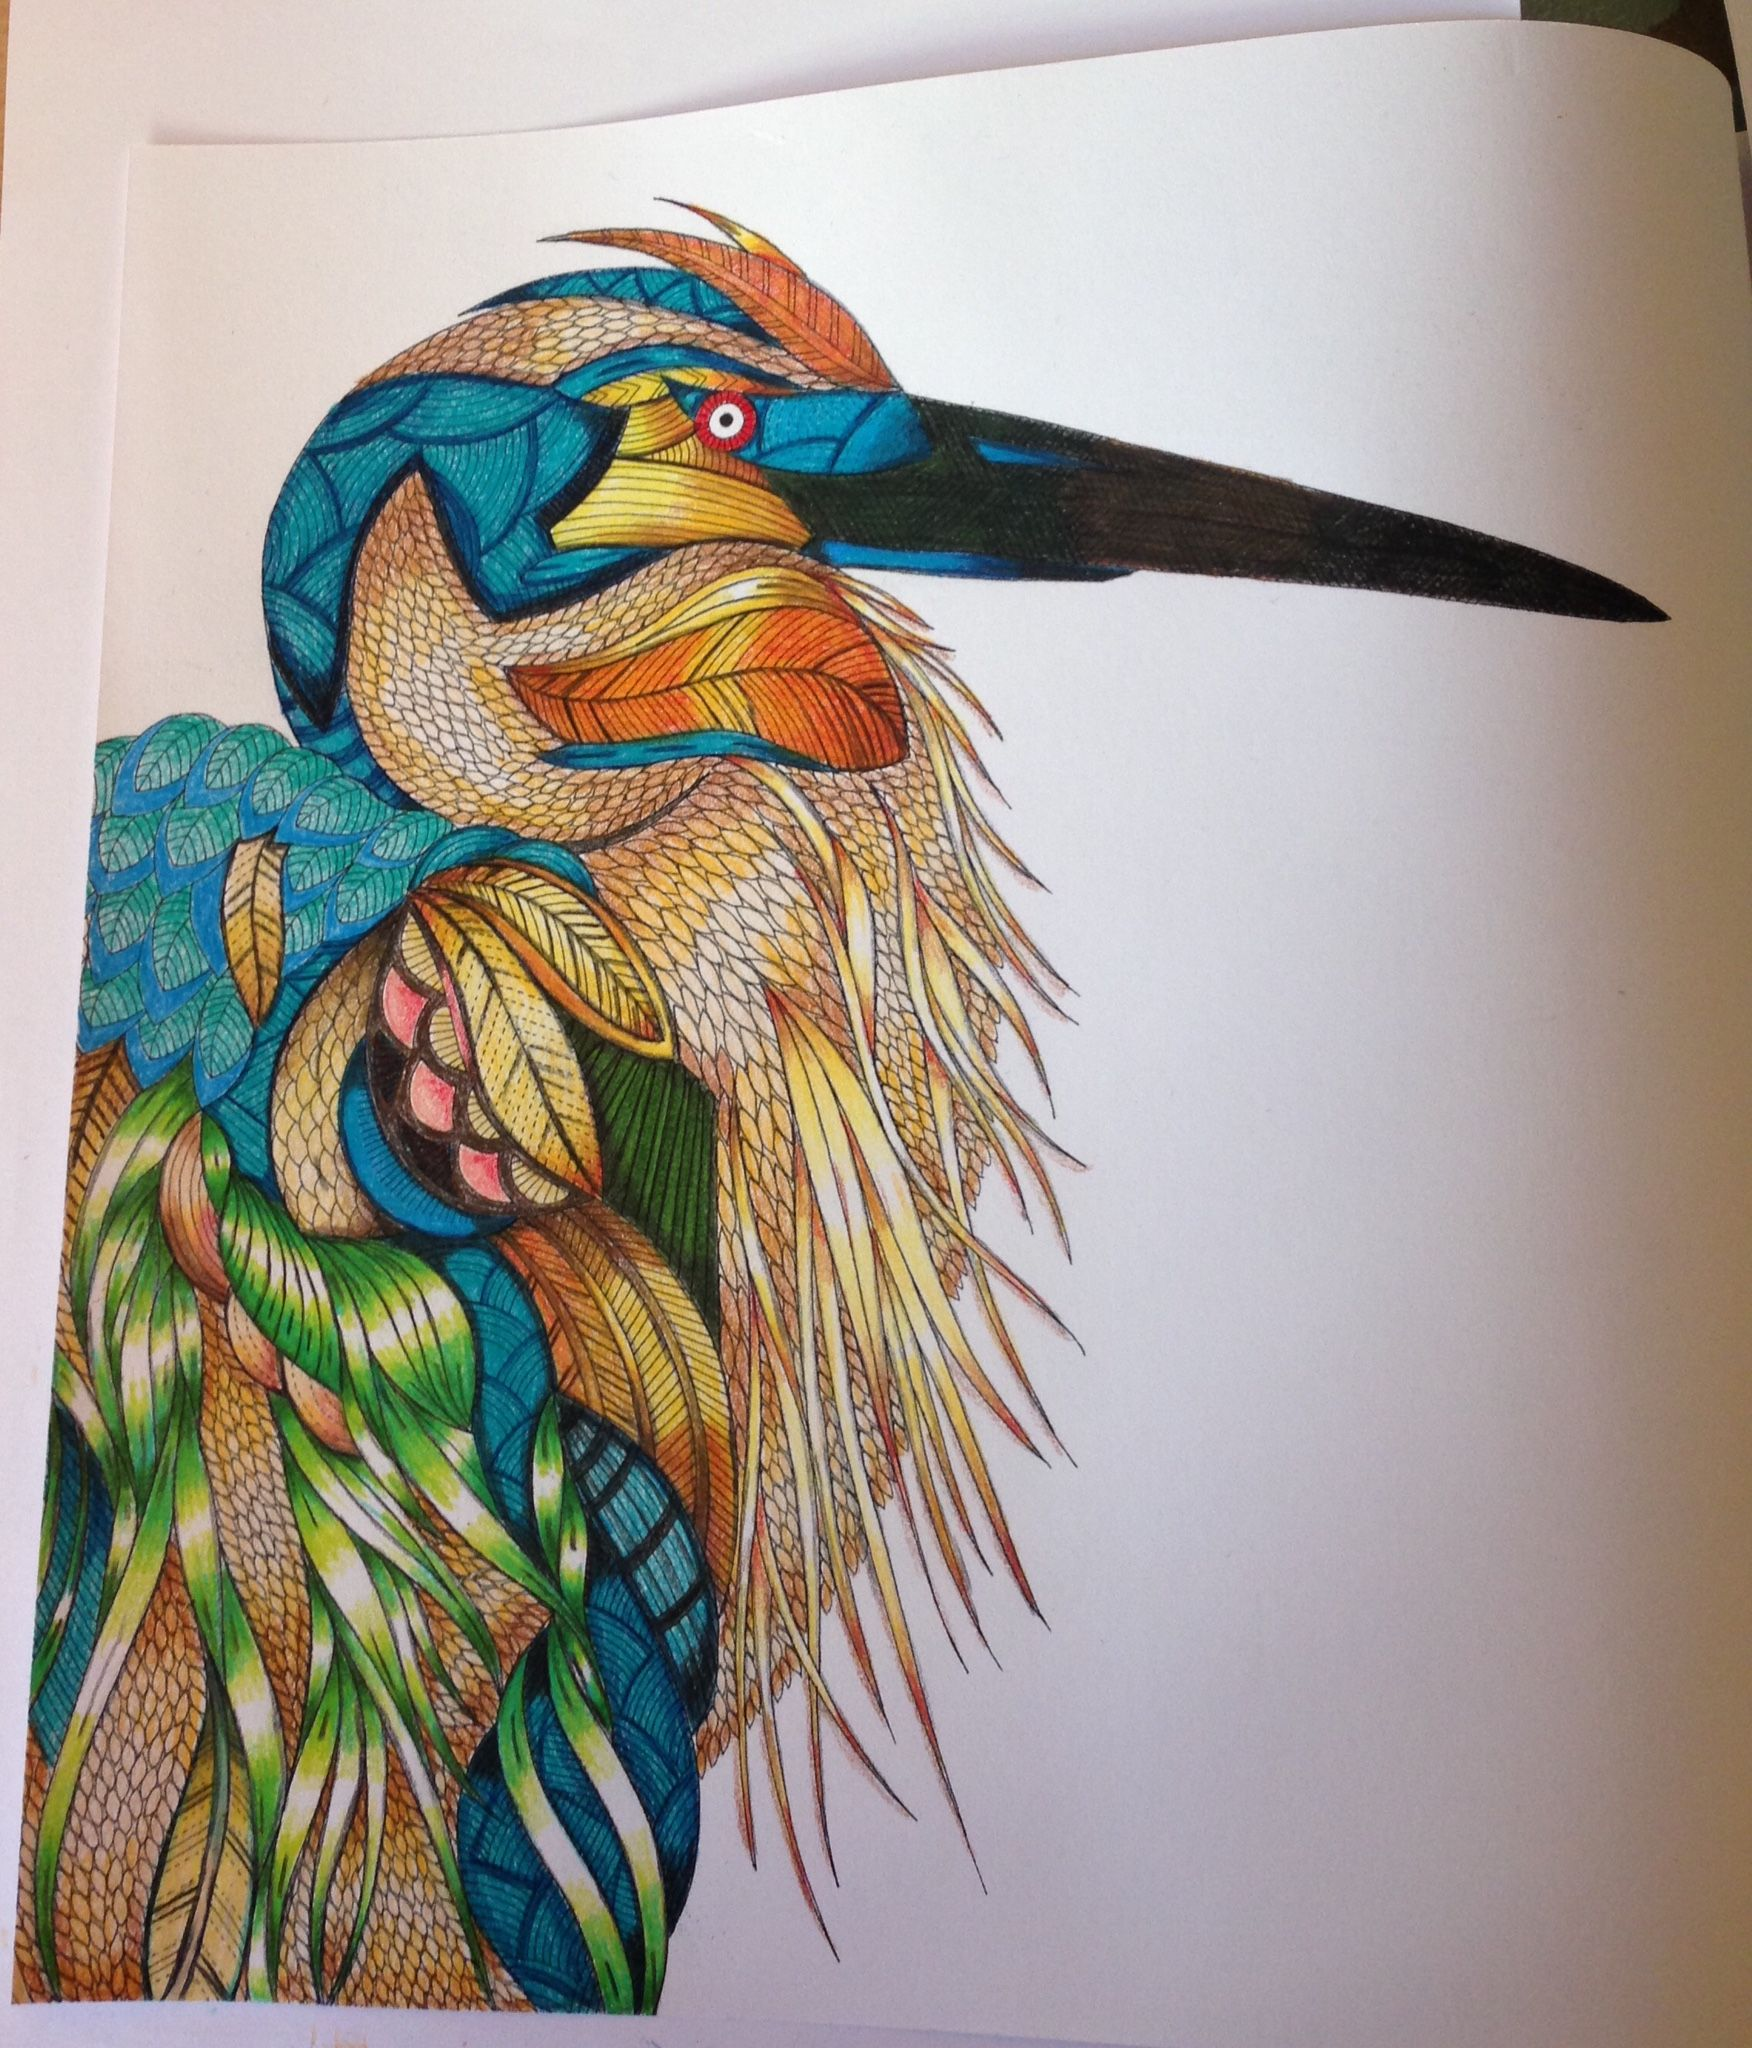 Coloring book animal kingdom - Millie Marotta Google Zoeken Colouring For Adultsadult Coloringcoloring Bookswatercolor Pencilswatercolor Paintingwatercolorsanimal Kingdomdrawing